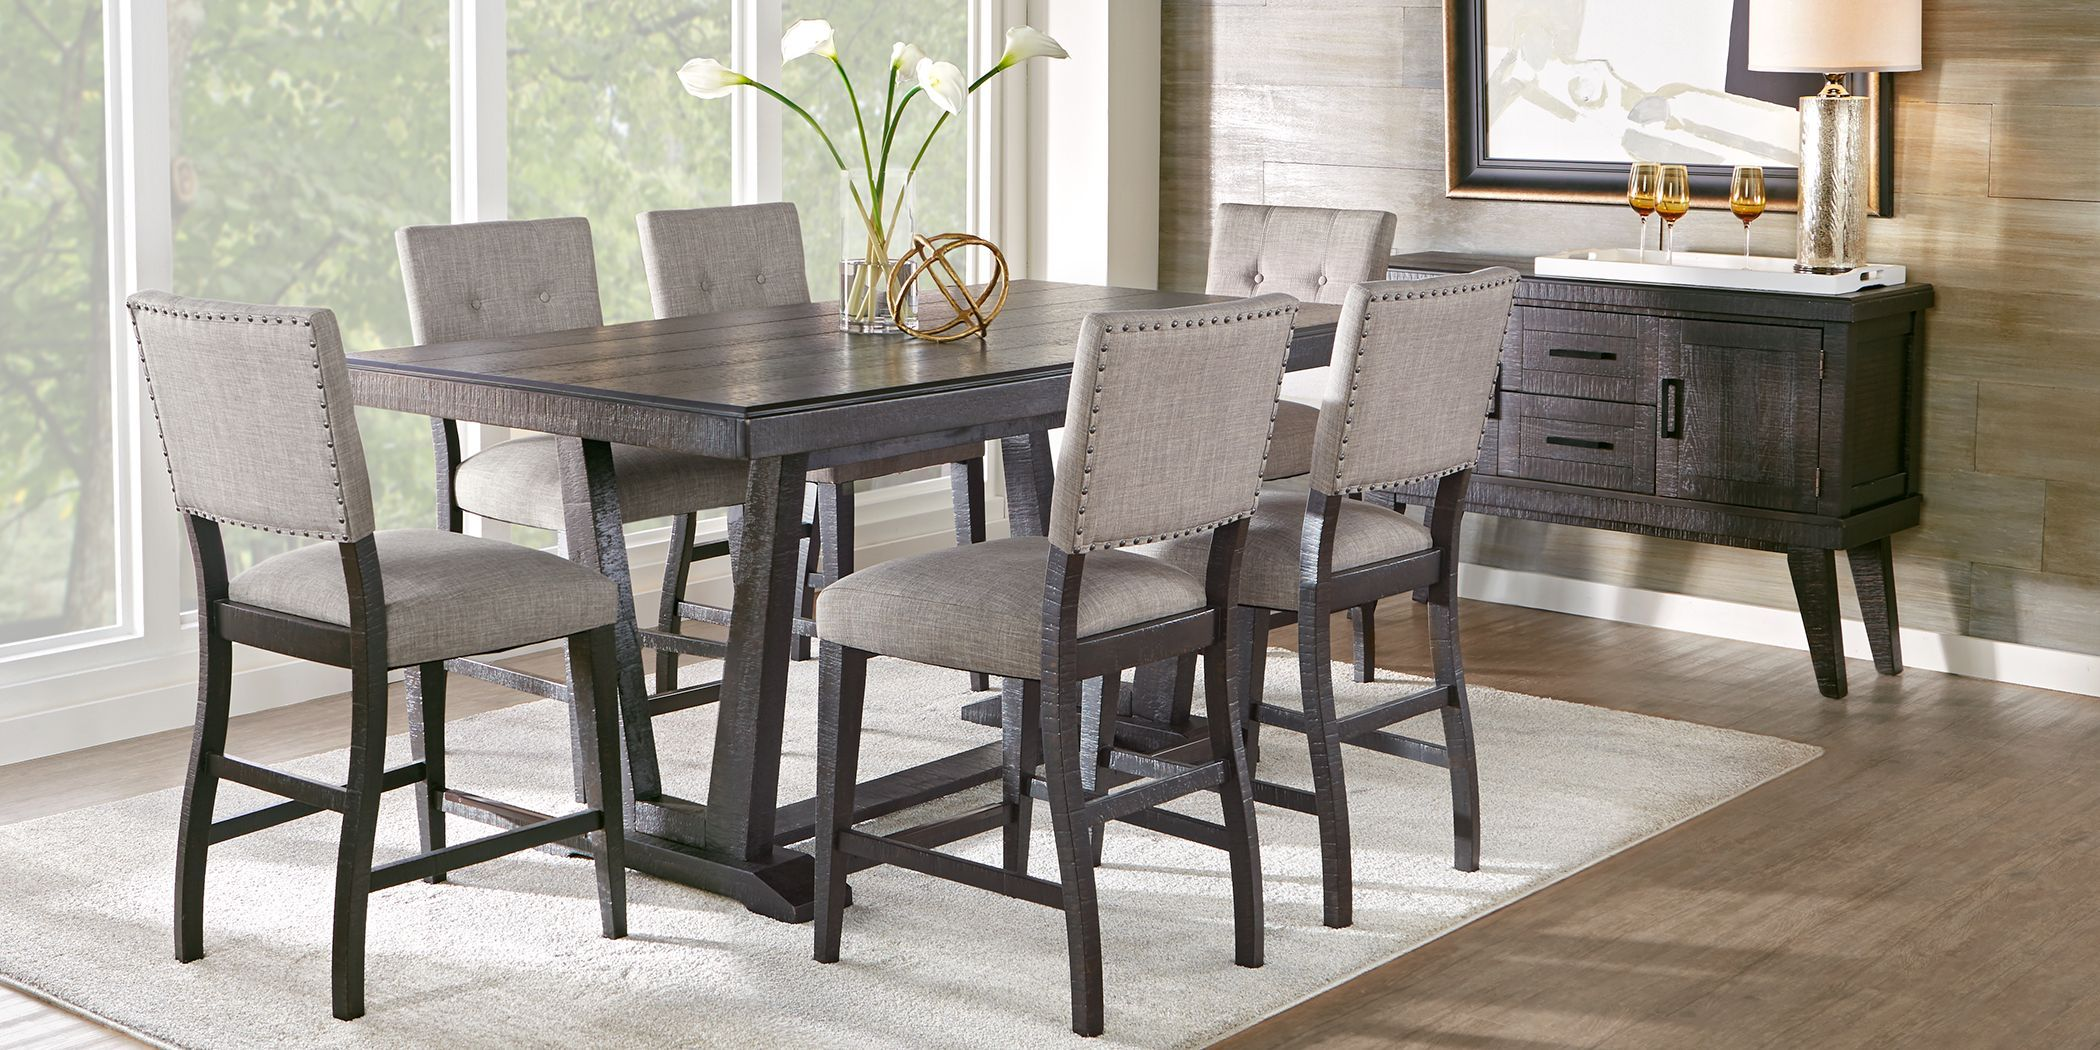 Hill Creek Black 5 Pc Counter Height Dining Room Counter Height